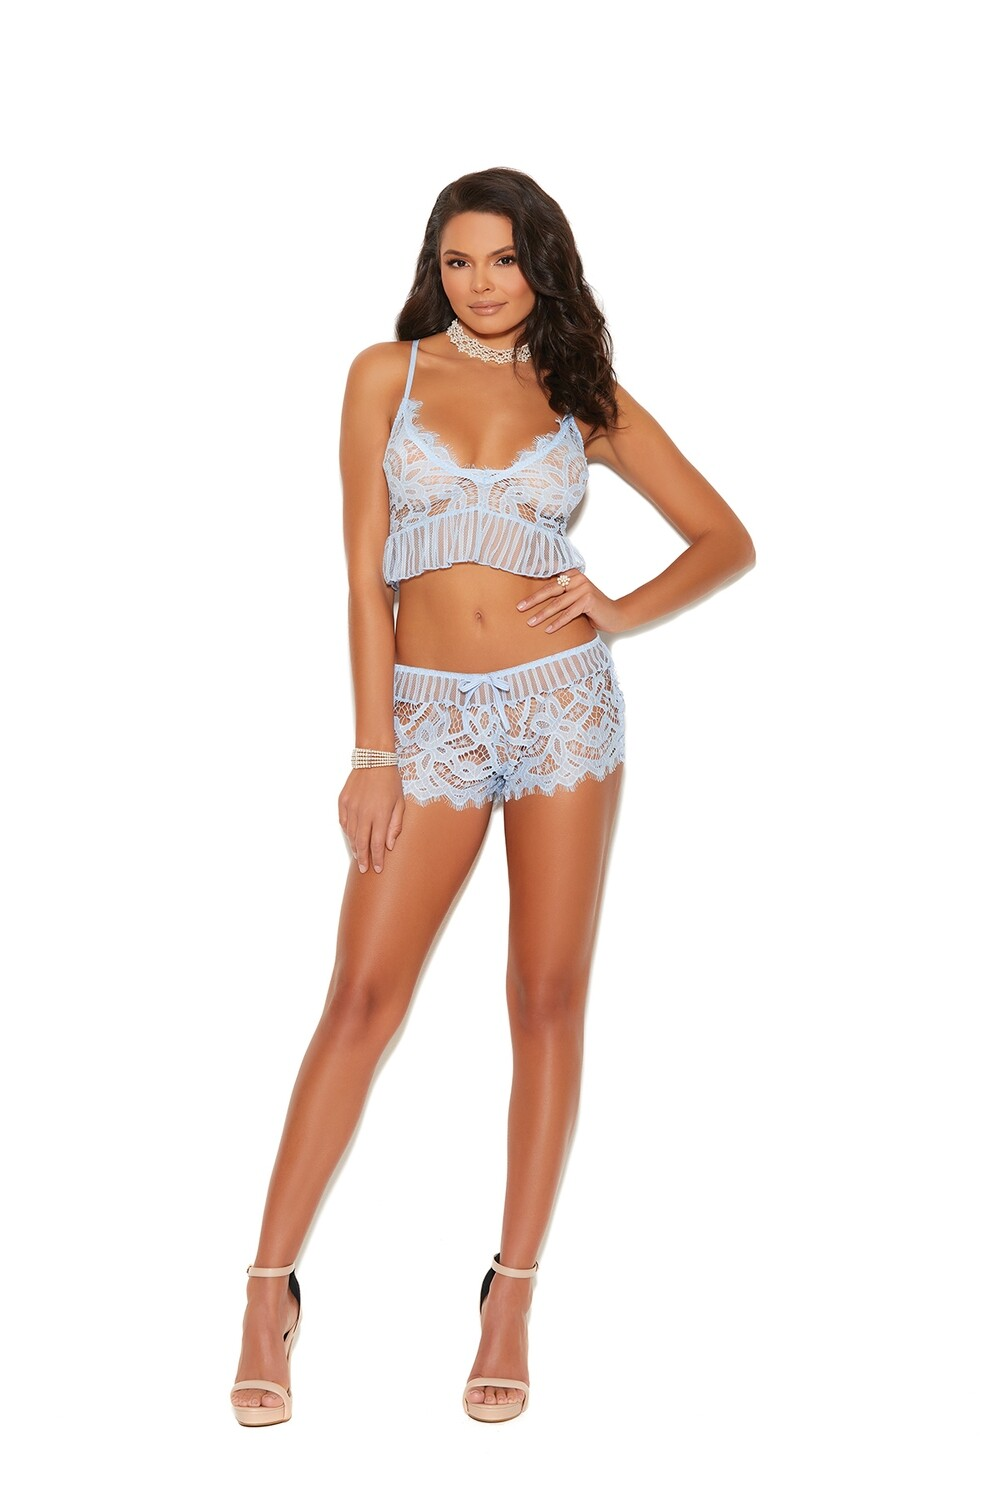 Lace Camiset